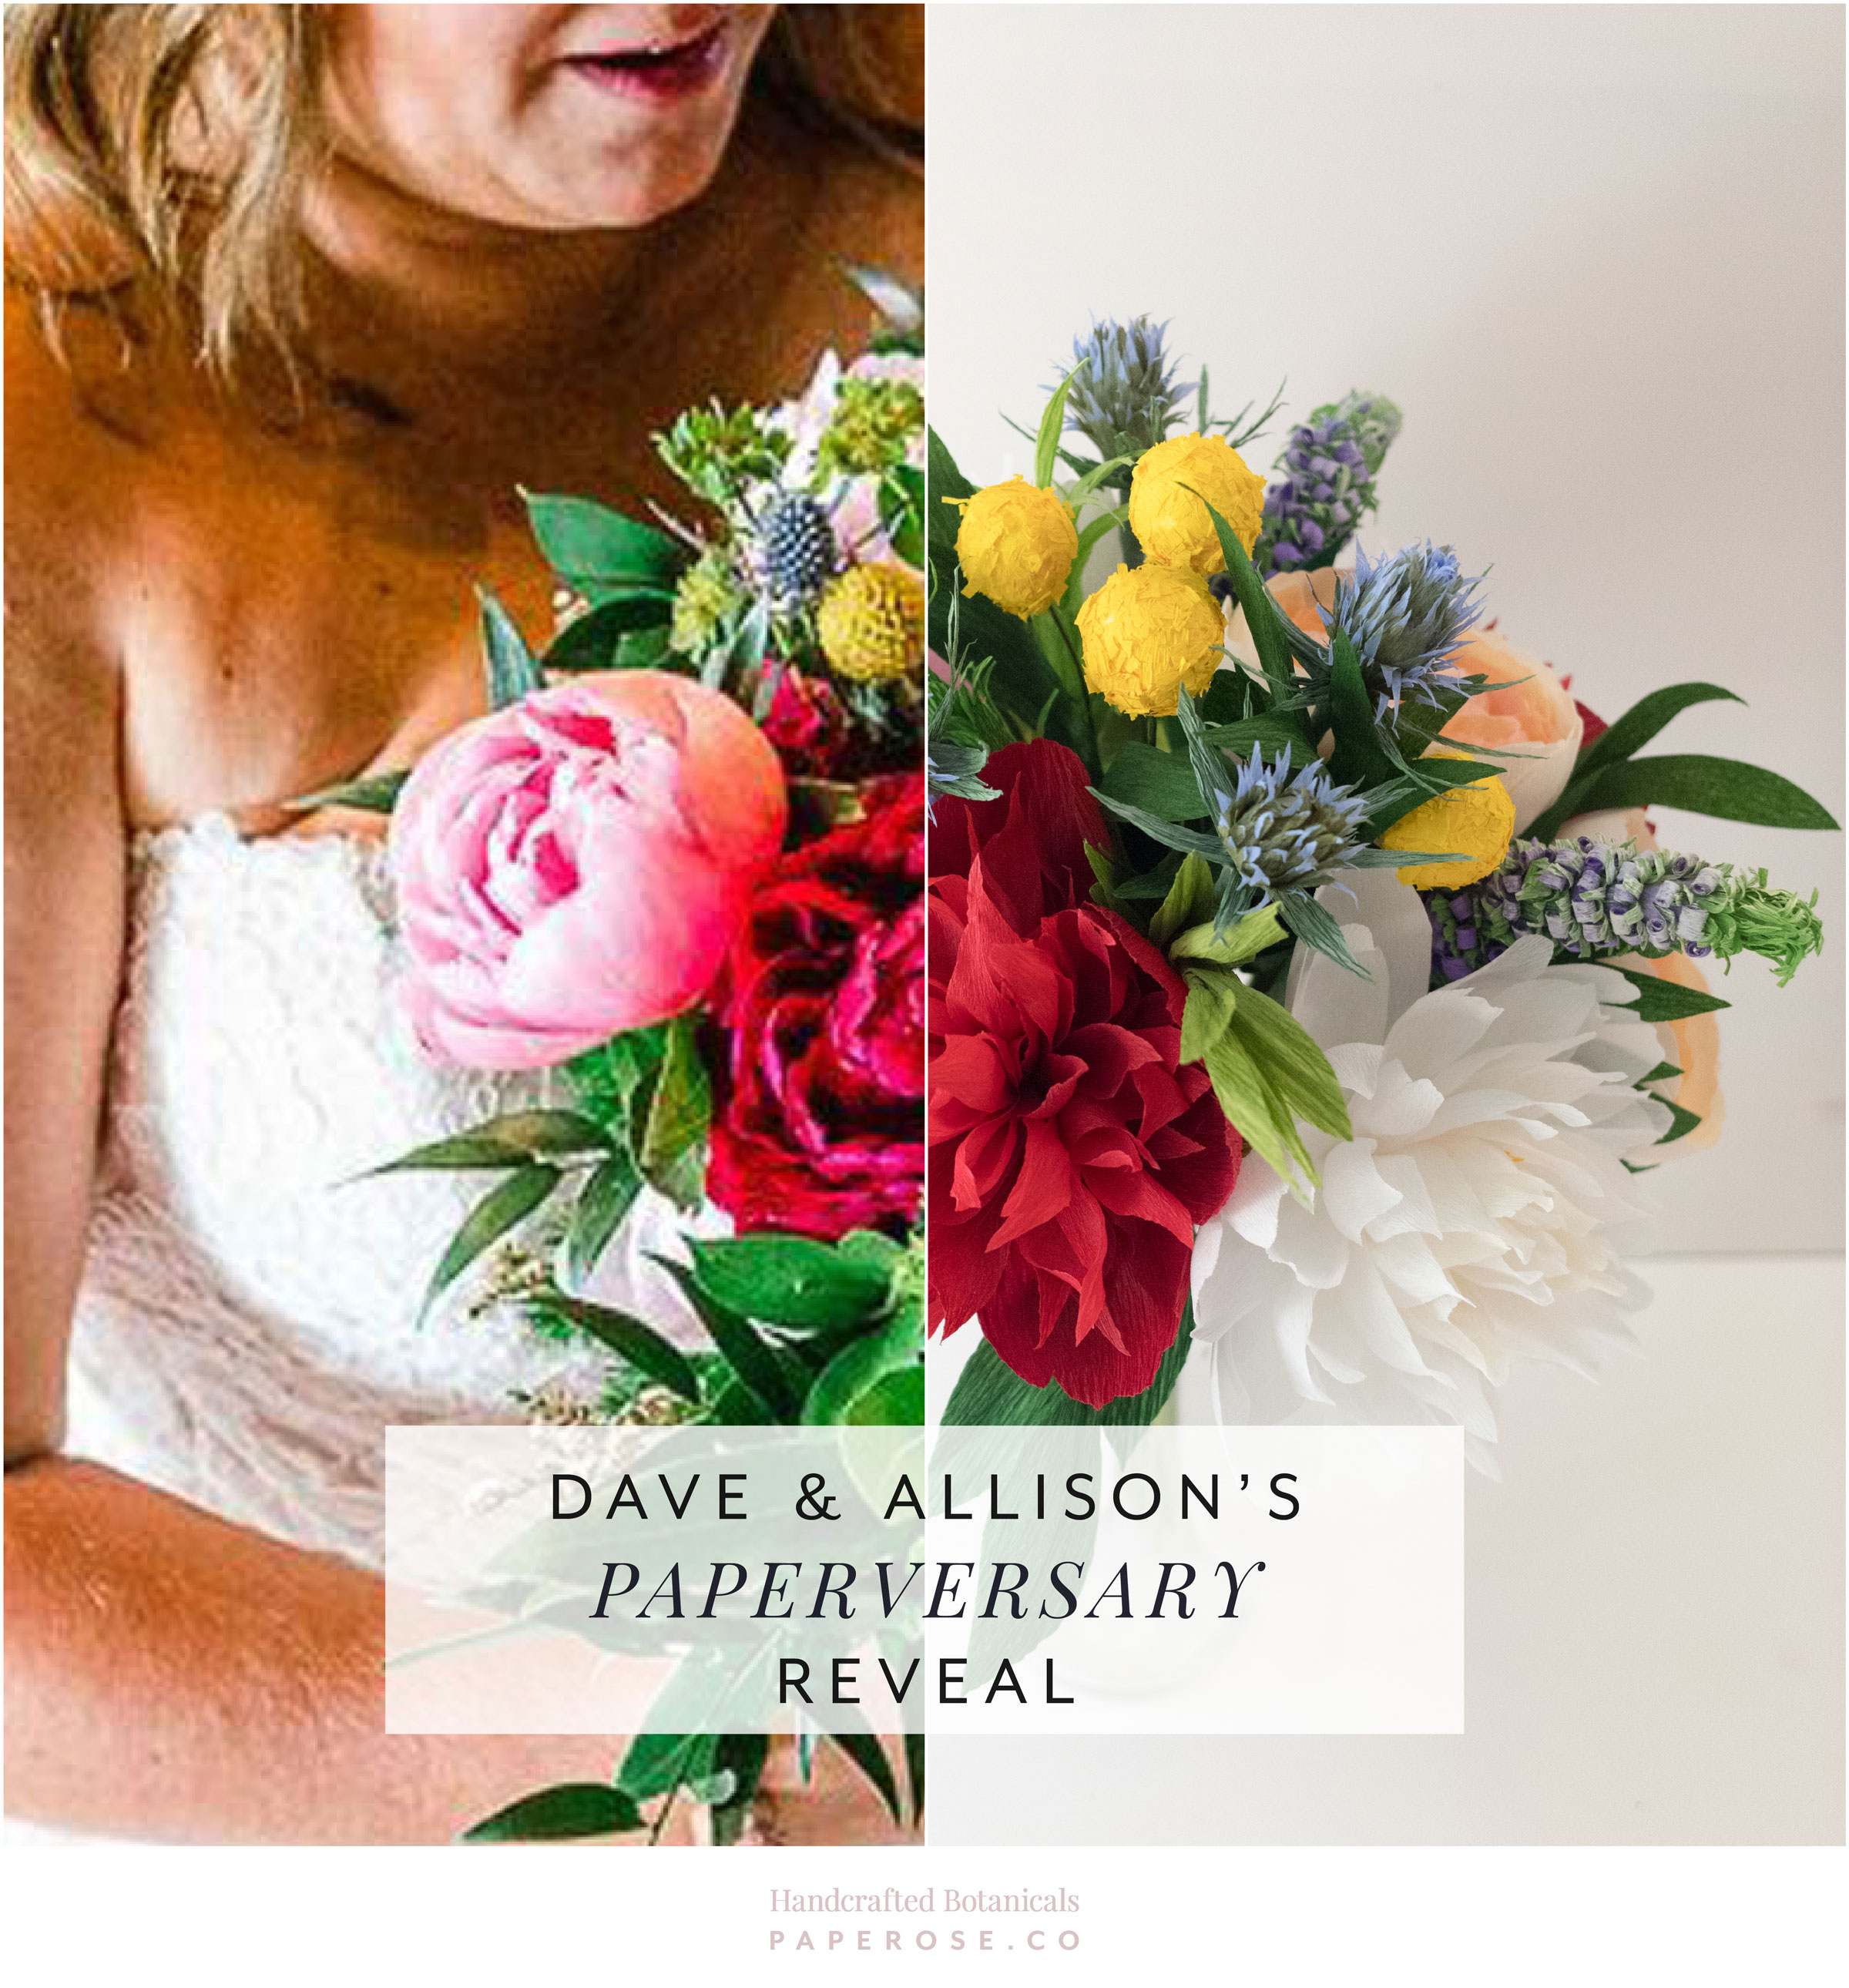 Dave and Allison's Paperversary Reveal